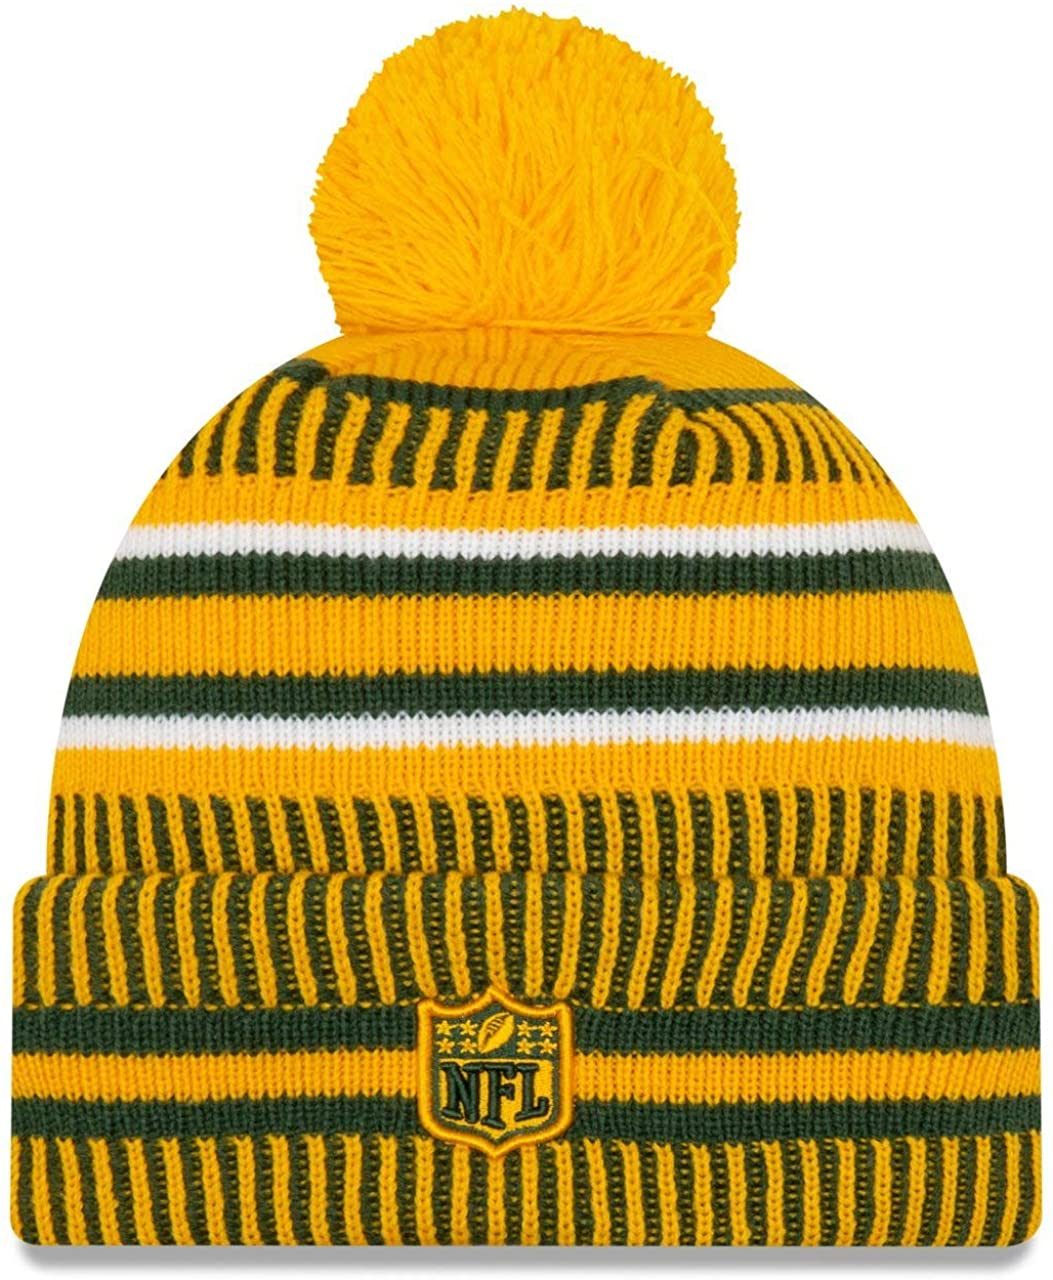 New Era 2019 Nfl Green Bay Packers Cuff Knit Hat Home Rv Beanie Stocking Cap Pom Cap Shop Store Free Shipping Worldwide